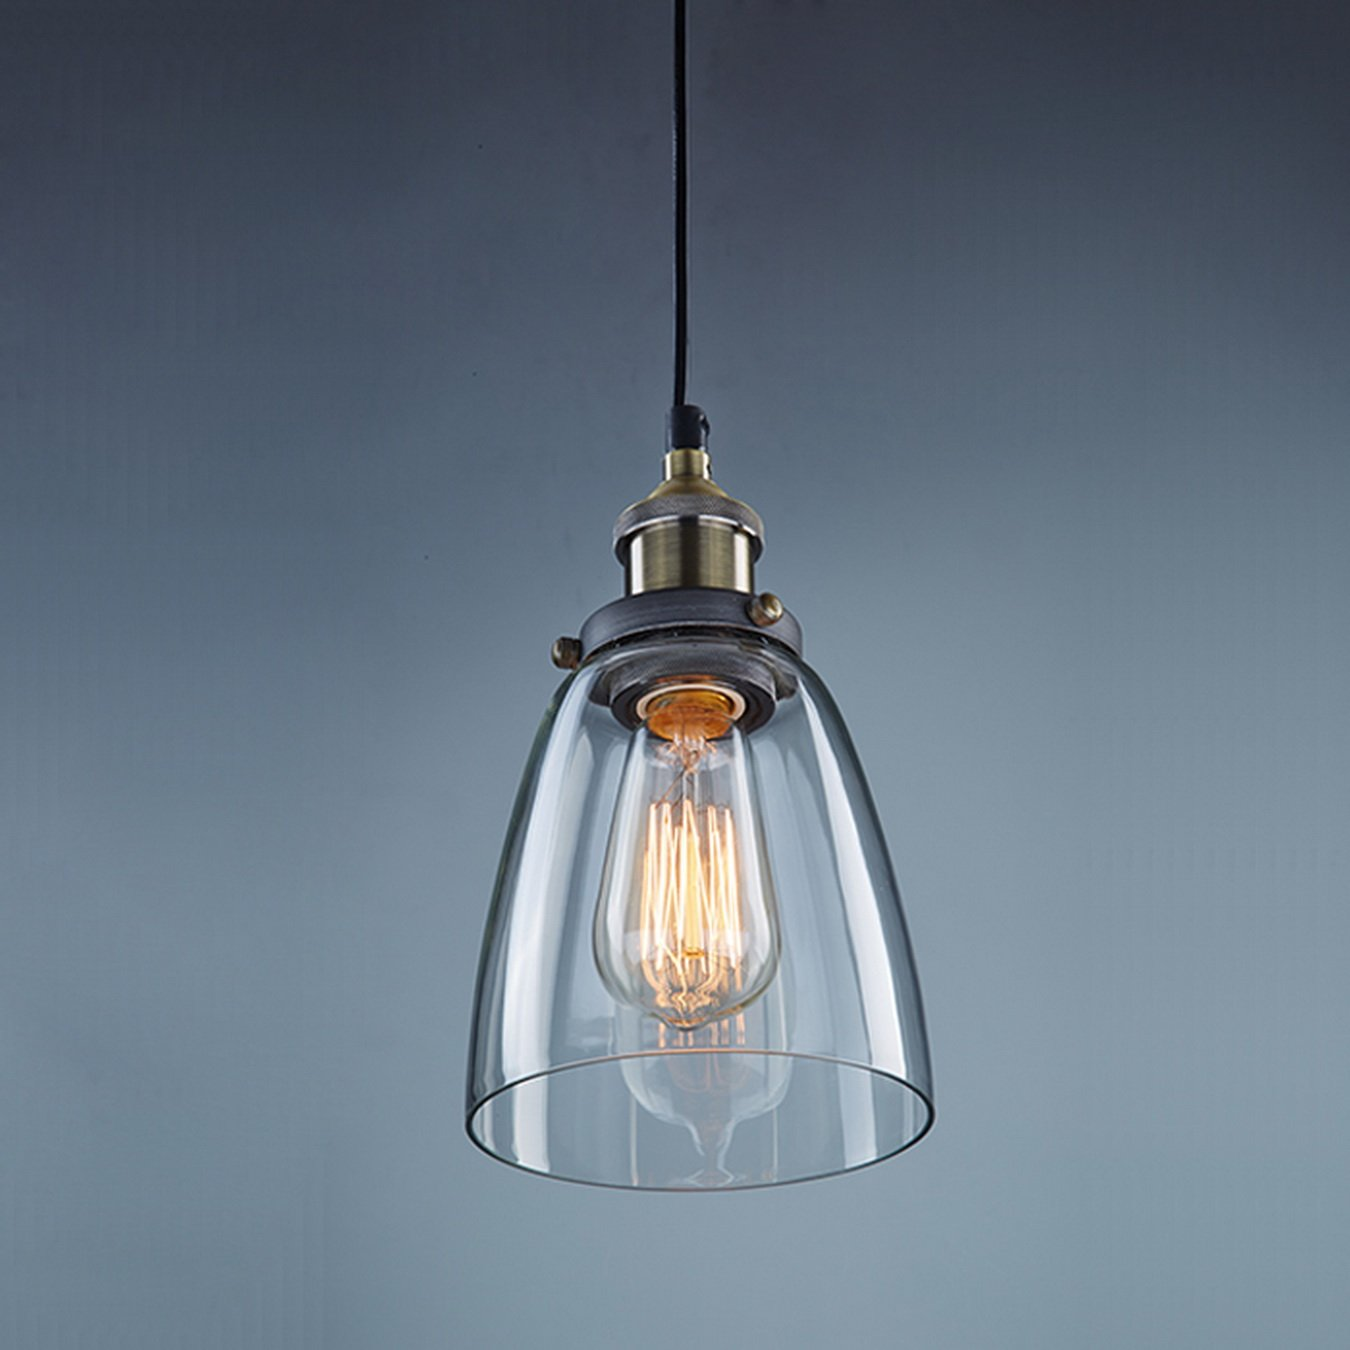 light pendant lane pdp reviews birch mini lighting